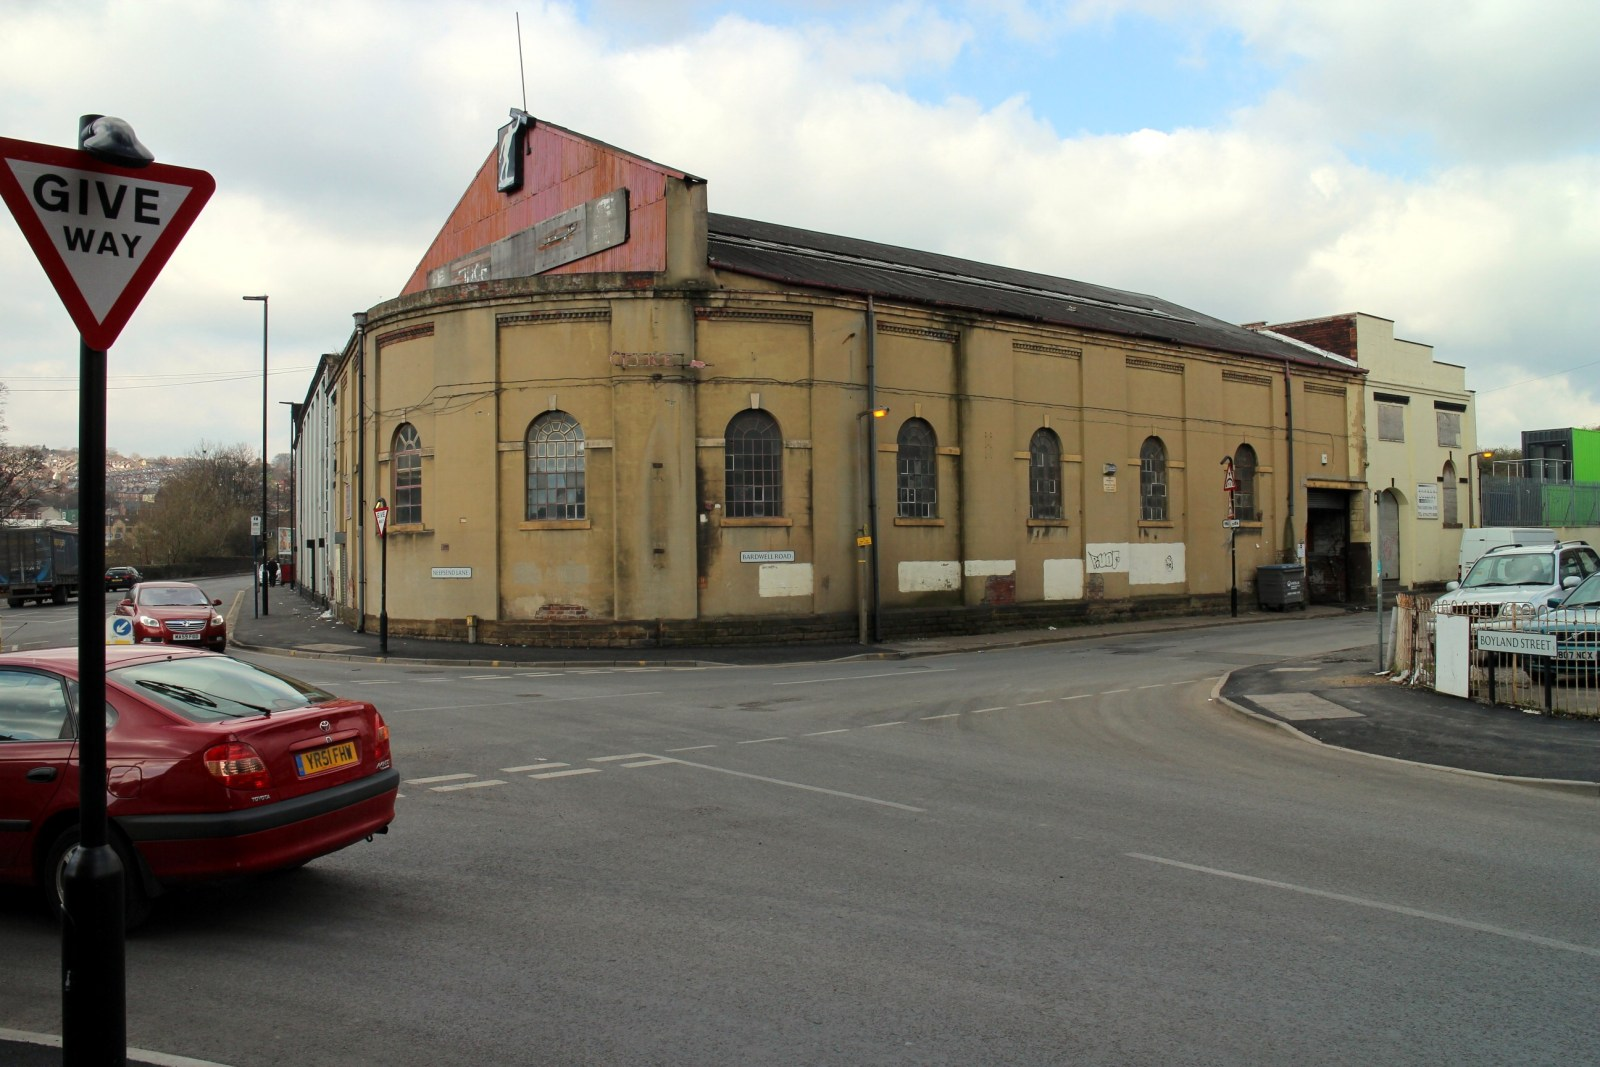 Old works neepsend lane sheffield history chat for The sheffield